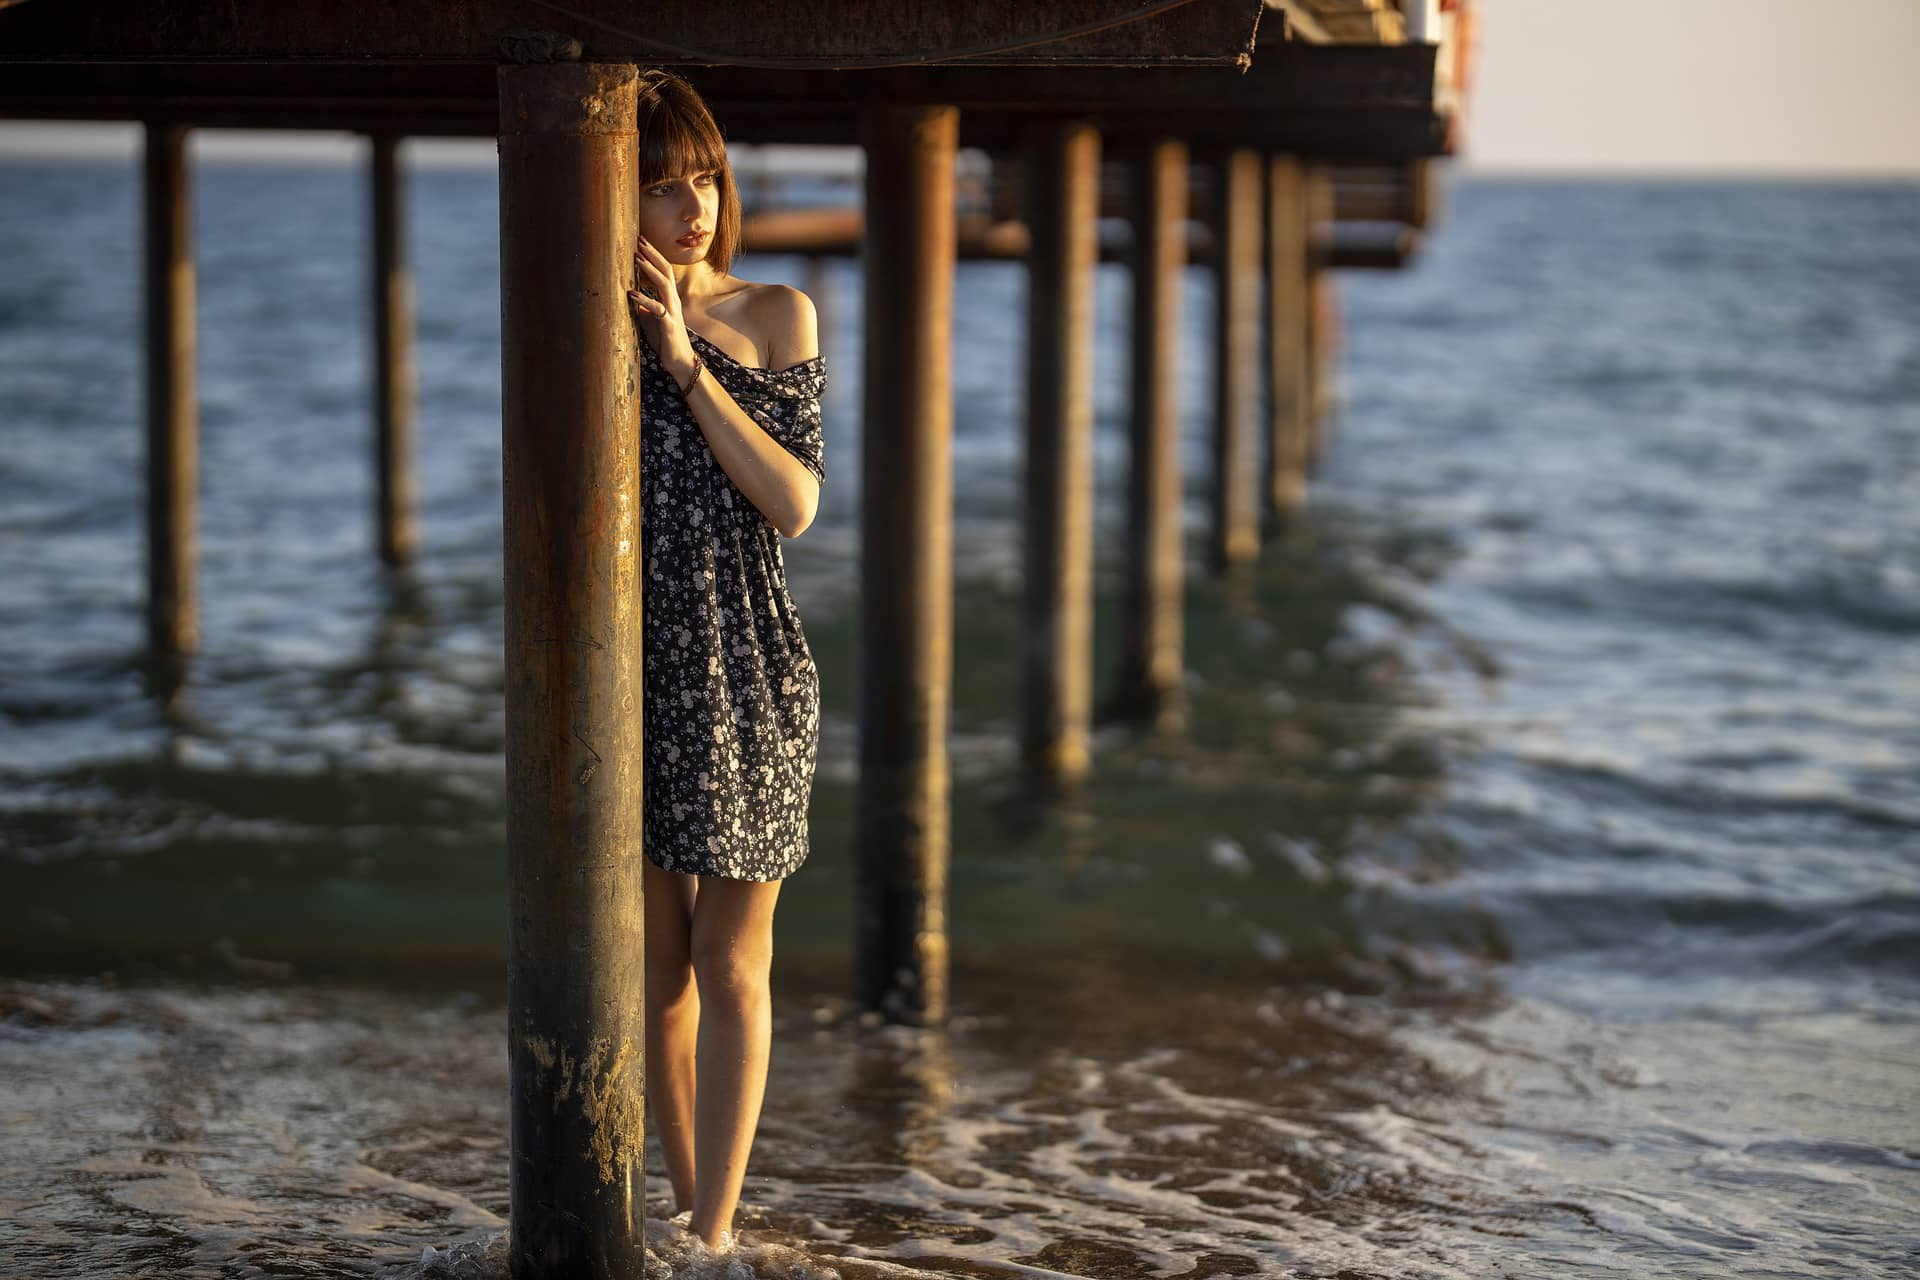 Beautiful woman İzge Güneş posing under a dock wearing a short flower patterned summer dress showing her bare legs with her feet in the water